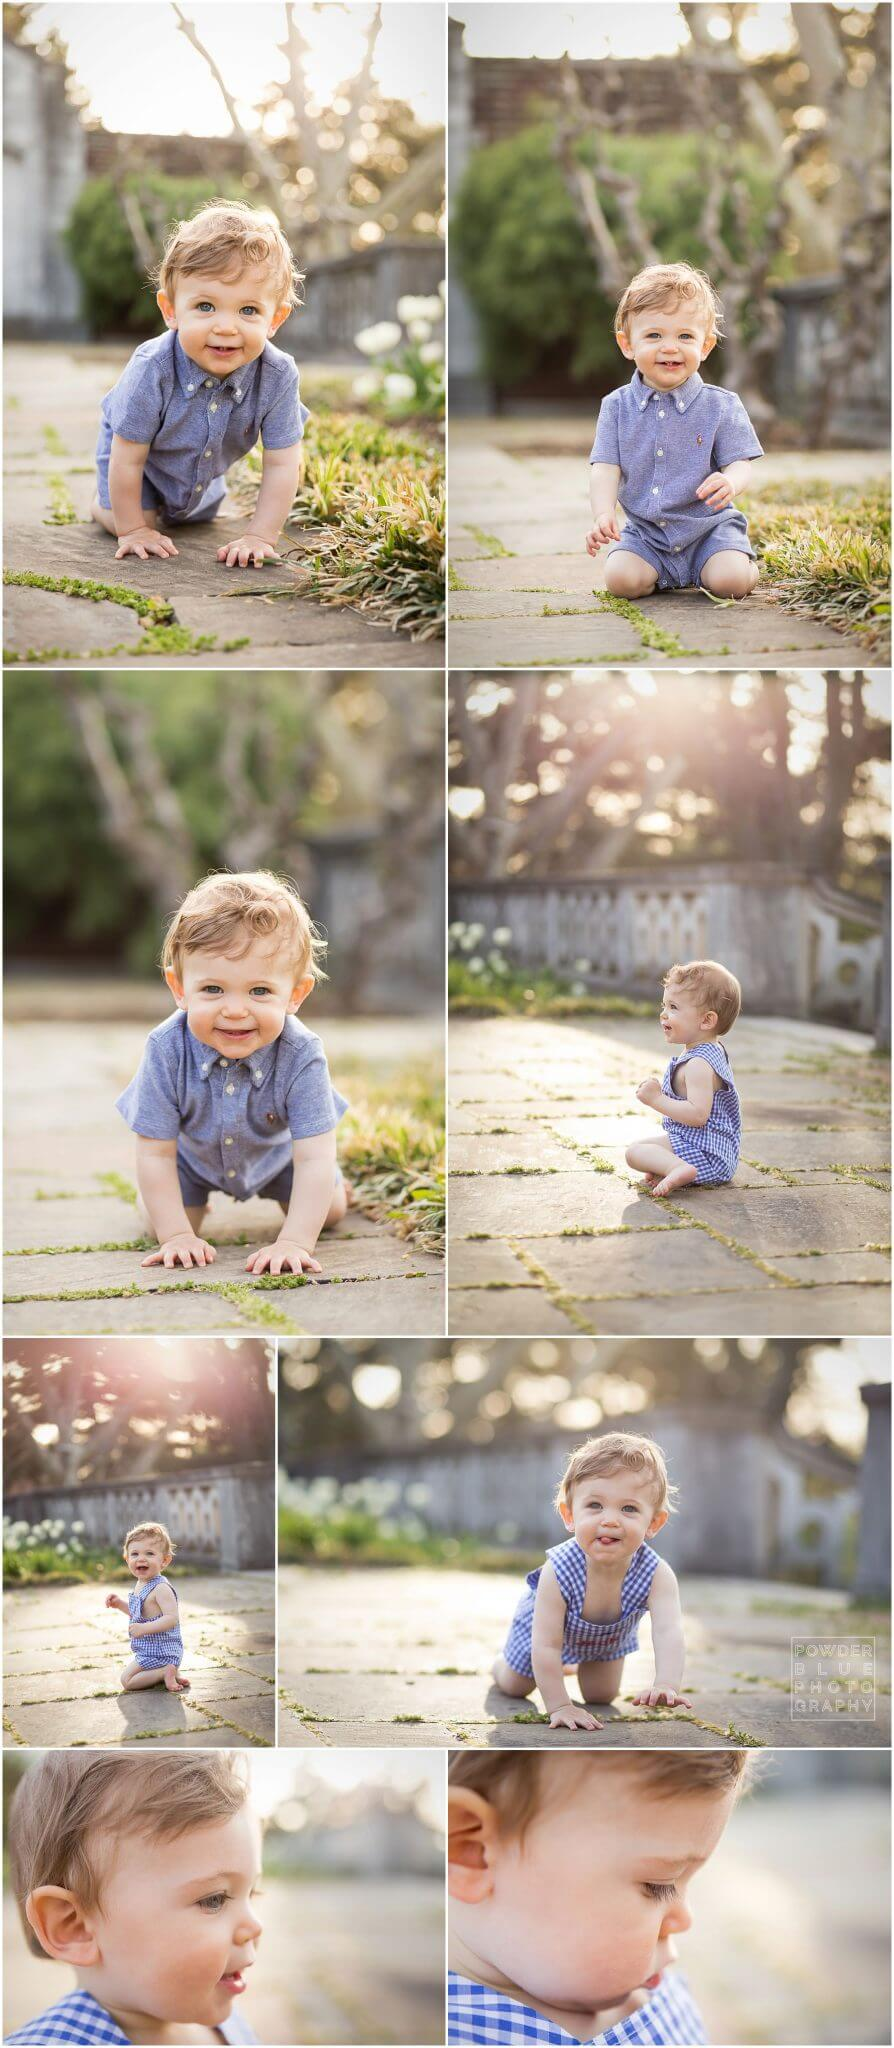 first year baby photography session at mellon park in pittsburgh.